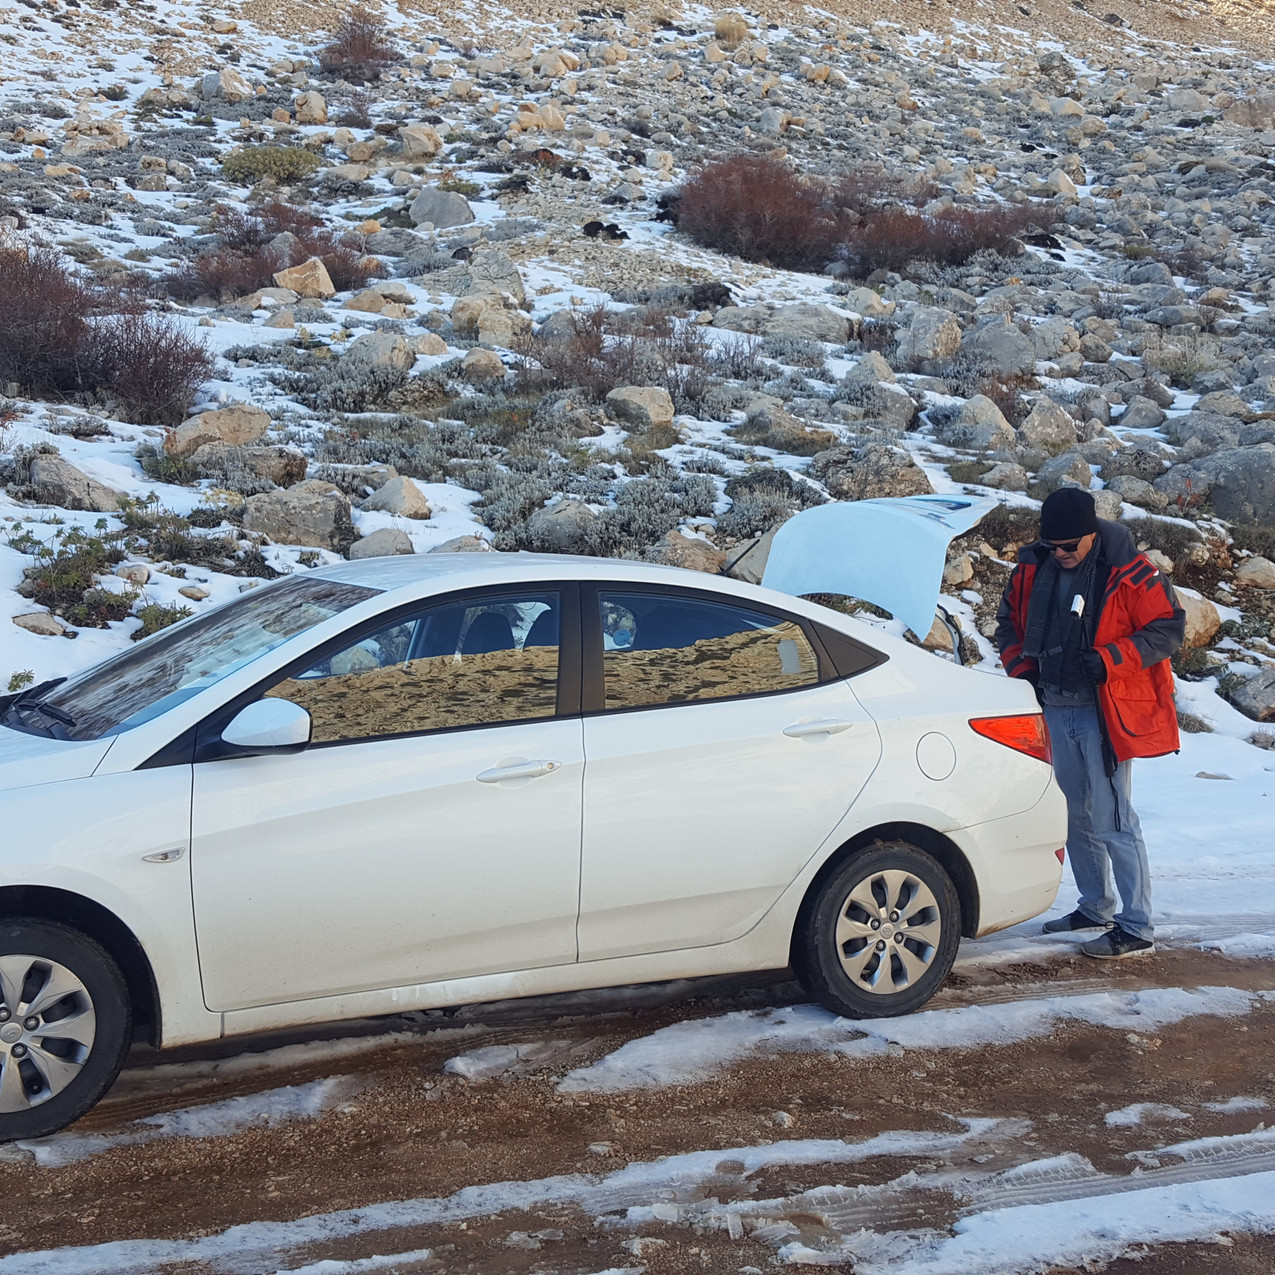 Our hire car at the snowline